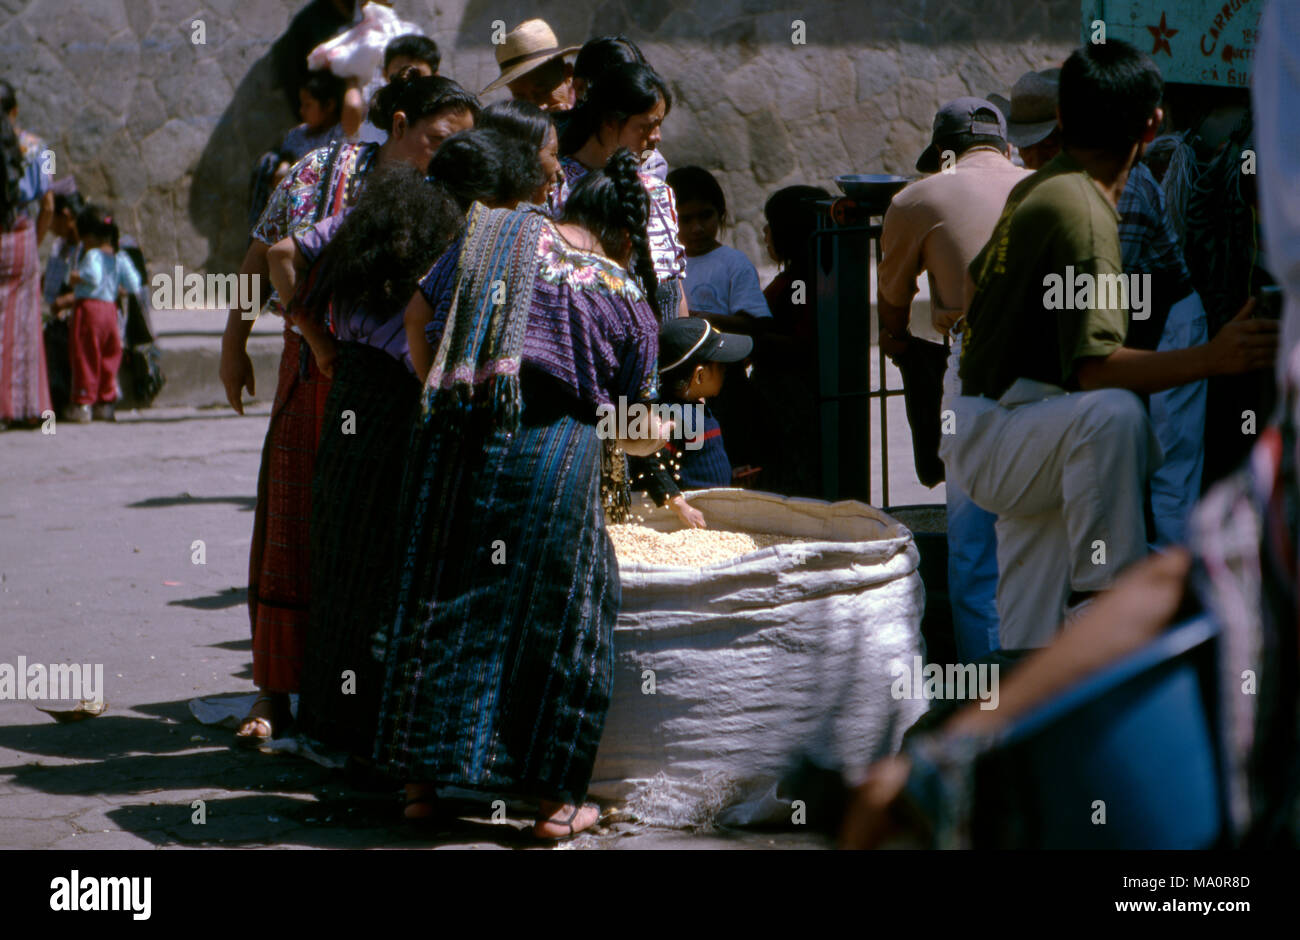 Indigenous Tz'utujil Mayan women buying corn (maize) at the market in San Lucas Tolimán, Guatemala. - Stock Image